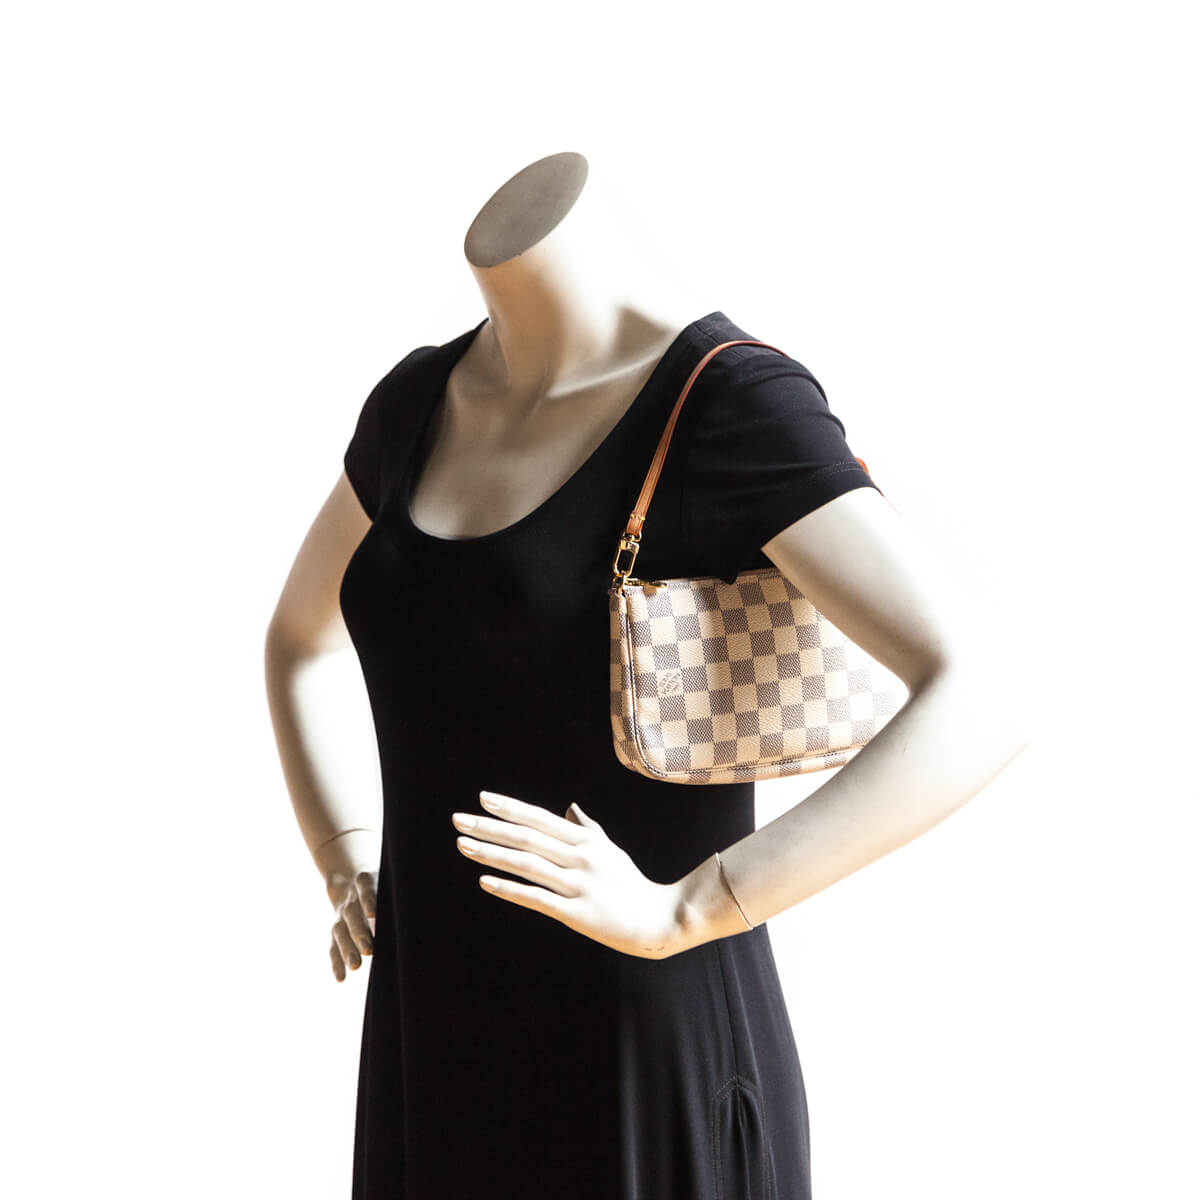 Louis Vuitton Damier Azur Pochette Accessoires - LOVE that BAG - Preowned  Authentic Designer Handbags ...